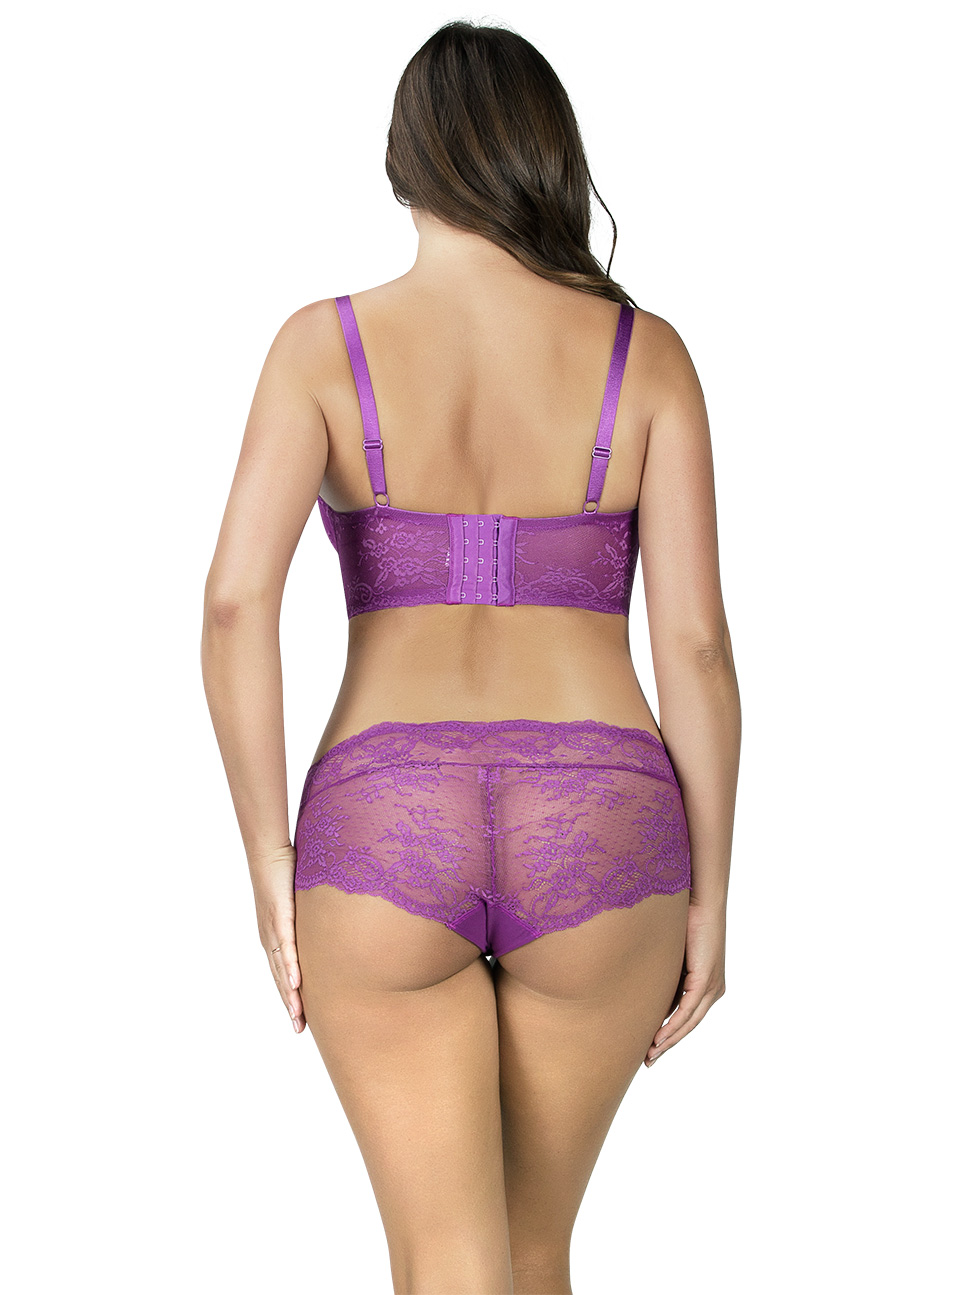 PARFAIT Sandrine PlungeLonglineBraP5351 HipsterP5355 Orchid Back - Sandrine Hipster Orchid P5355